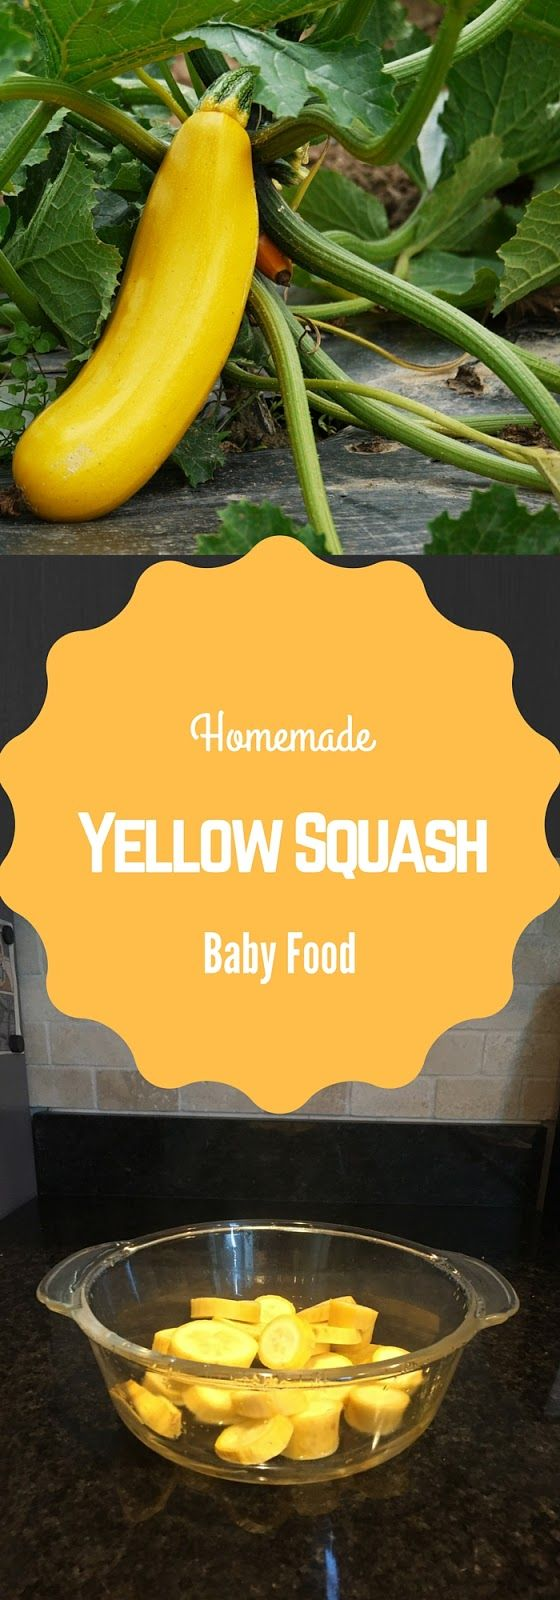 Homemade Yellow Squash Baby Food-- save money and make your own baby food! This recipe is super easy and a healthy purée for baby!